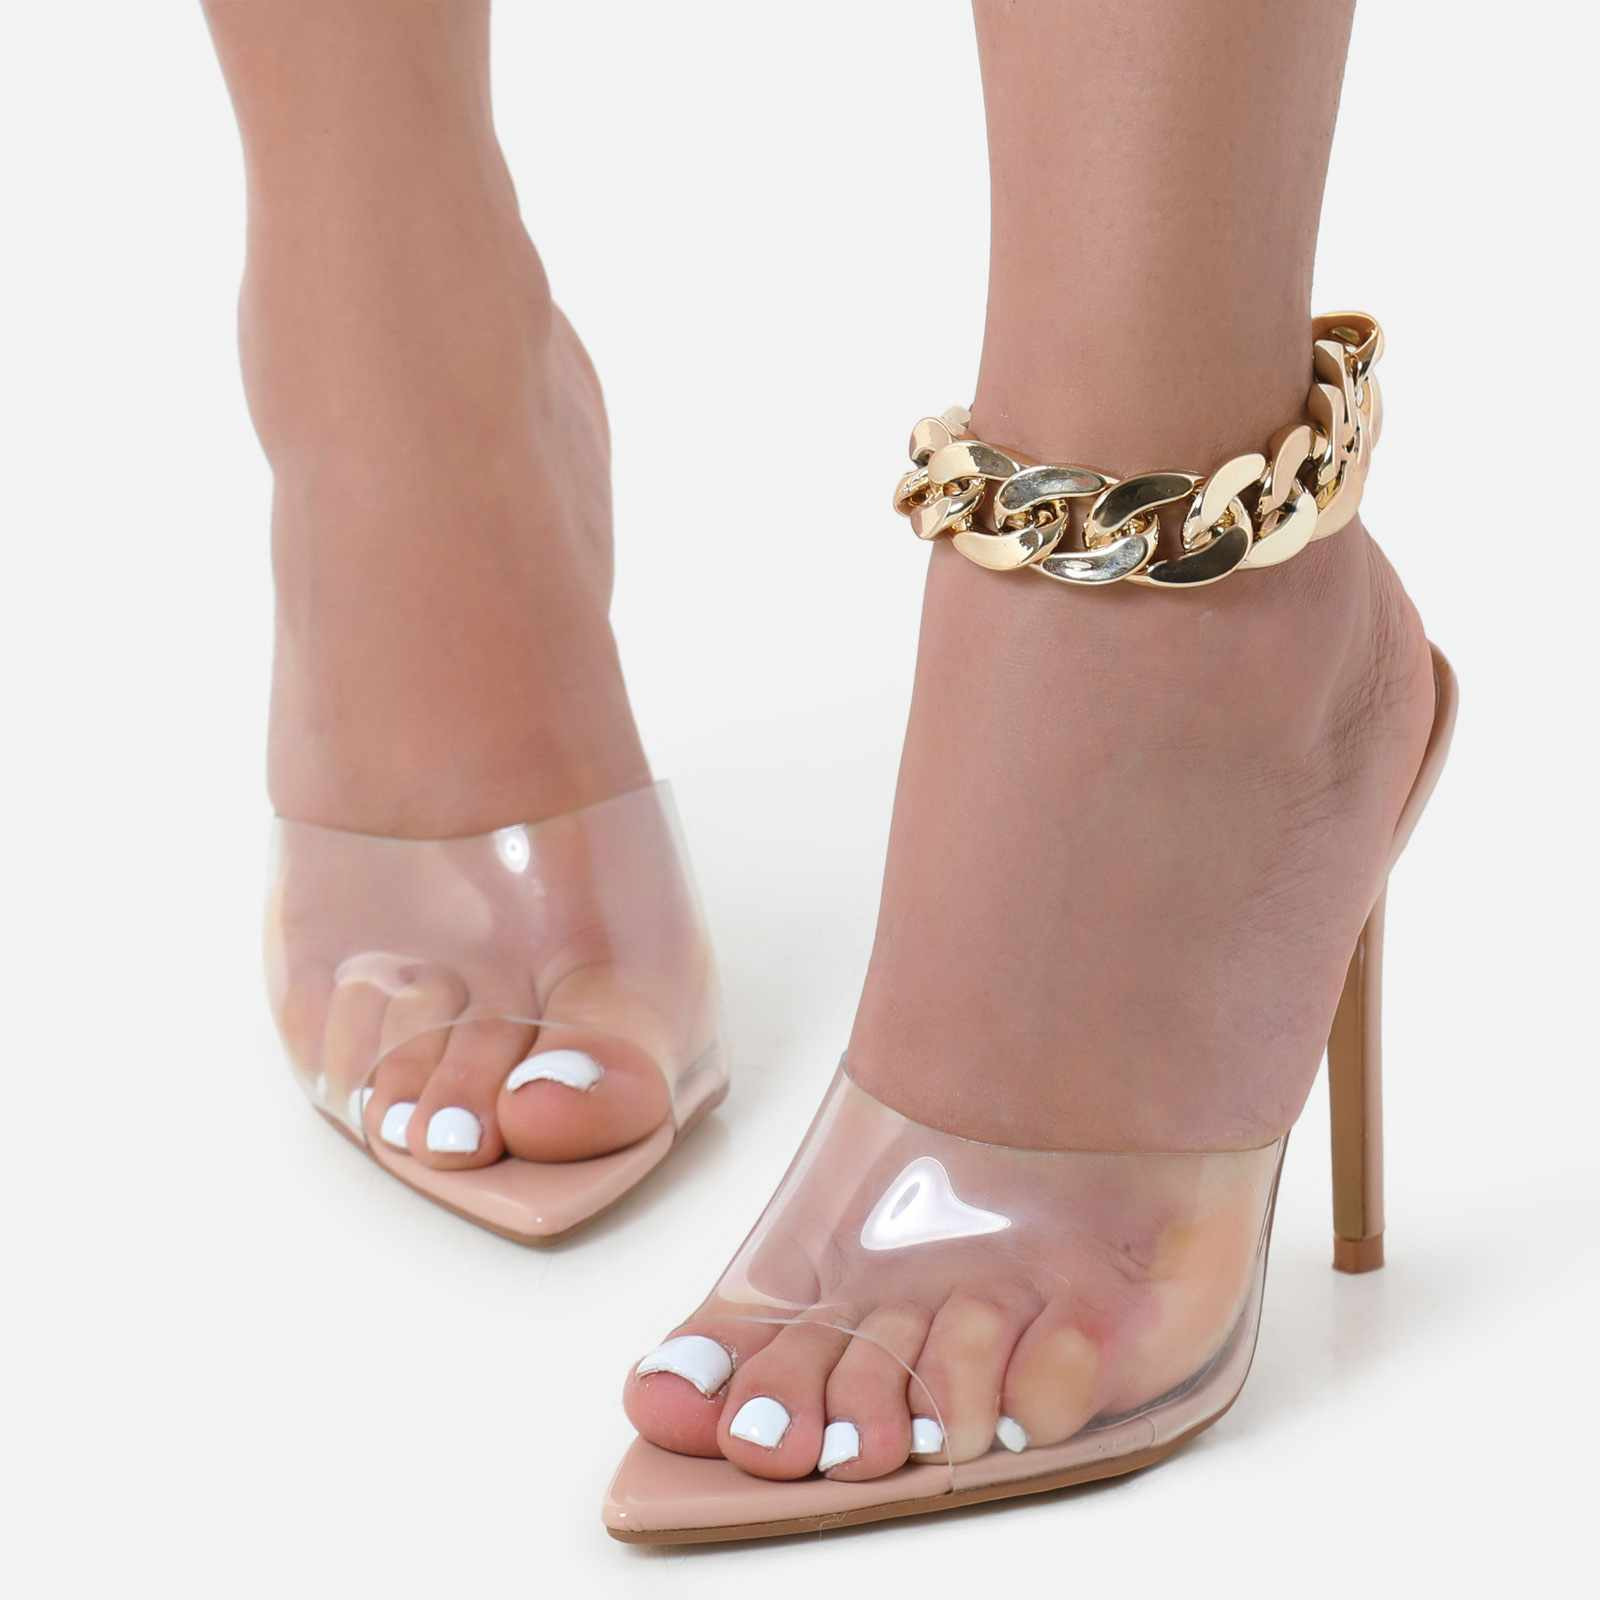 Chunky Chain Anklet In Gold